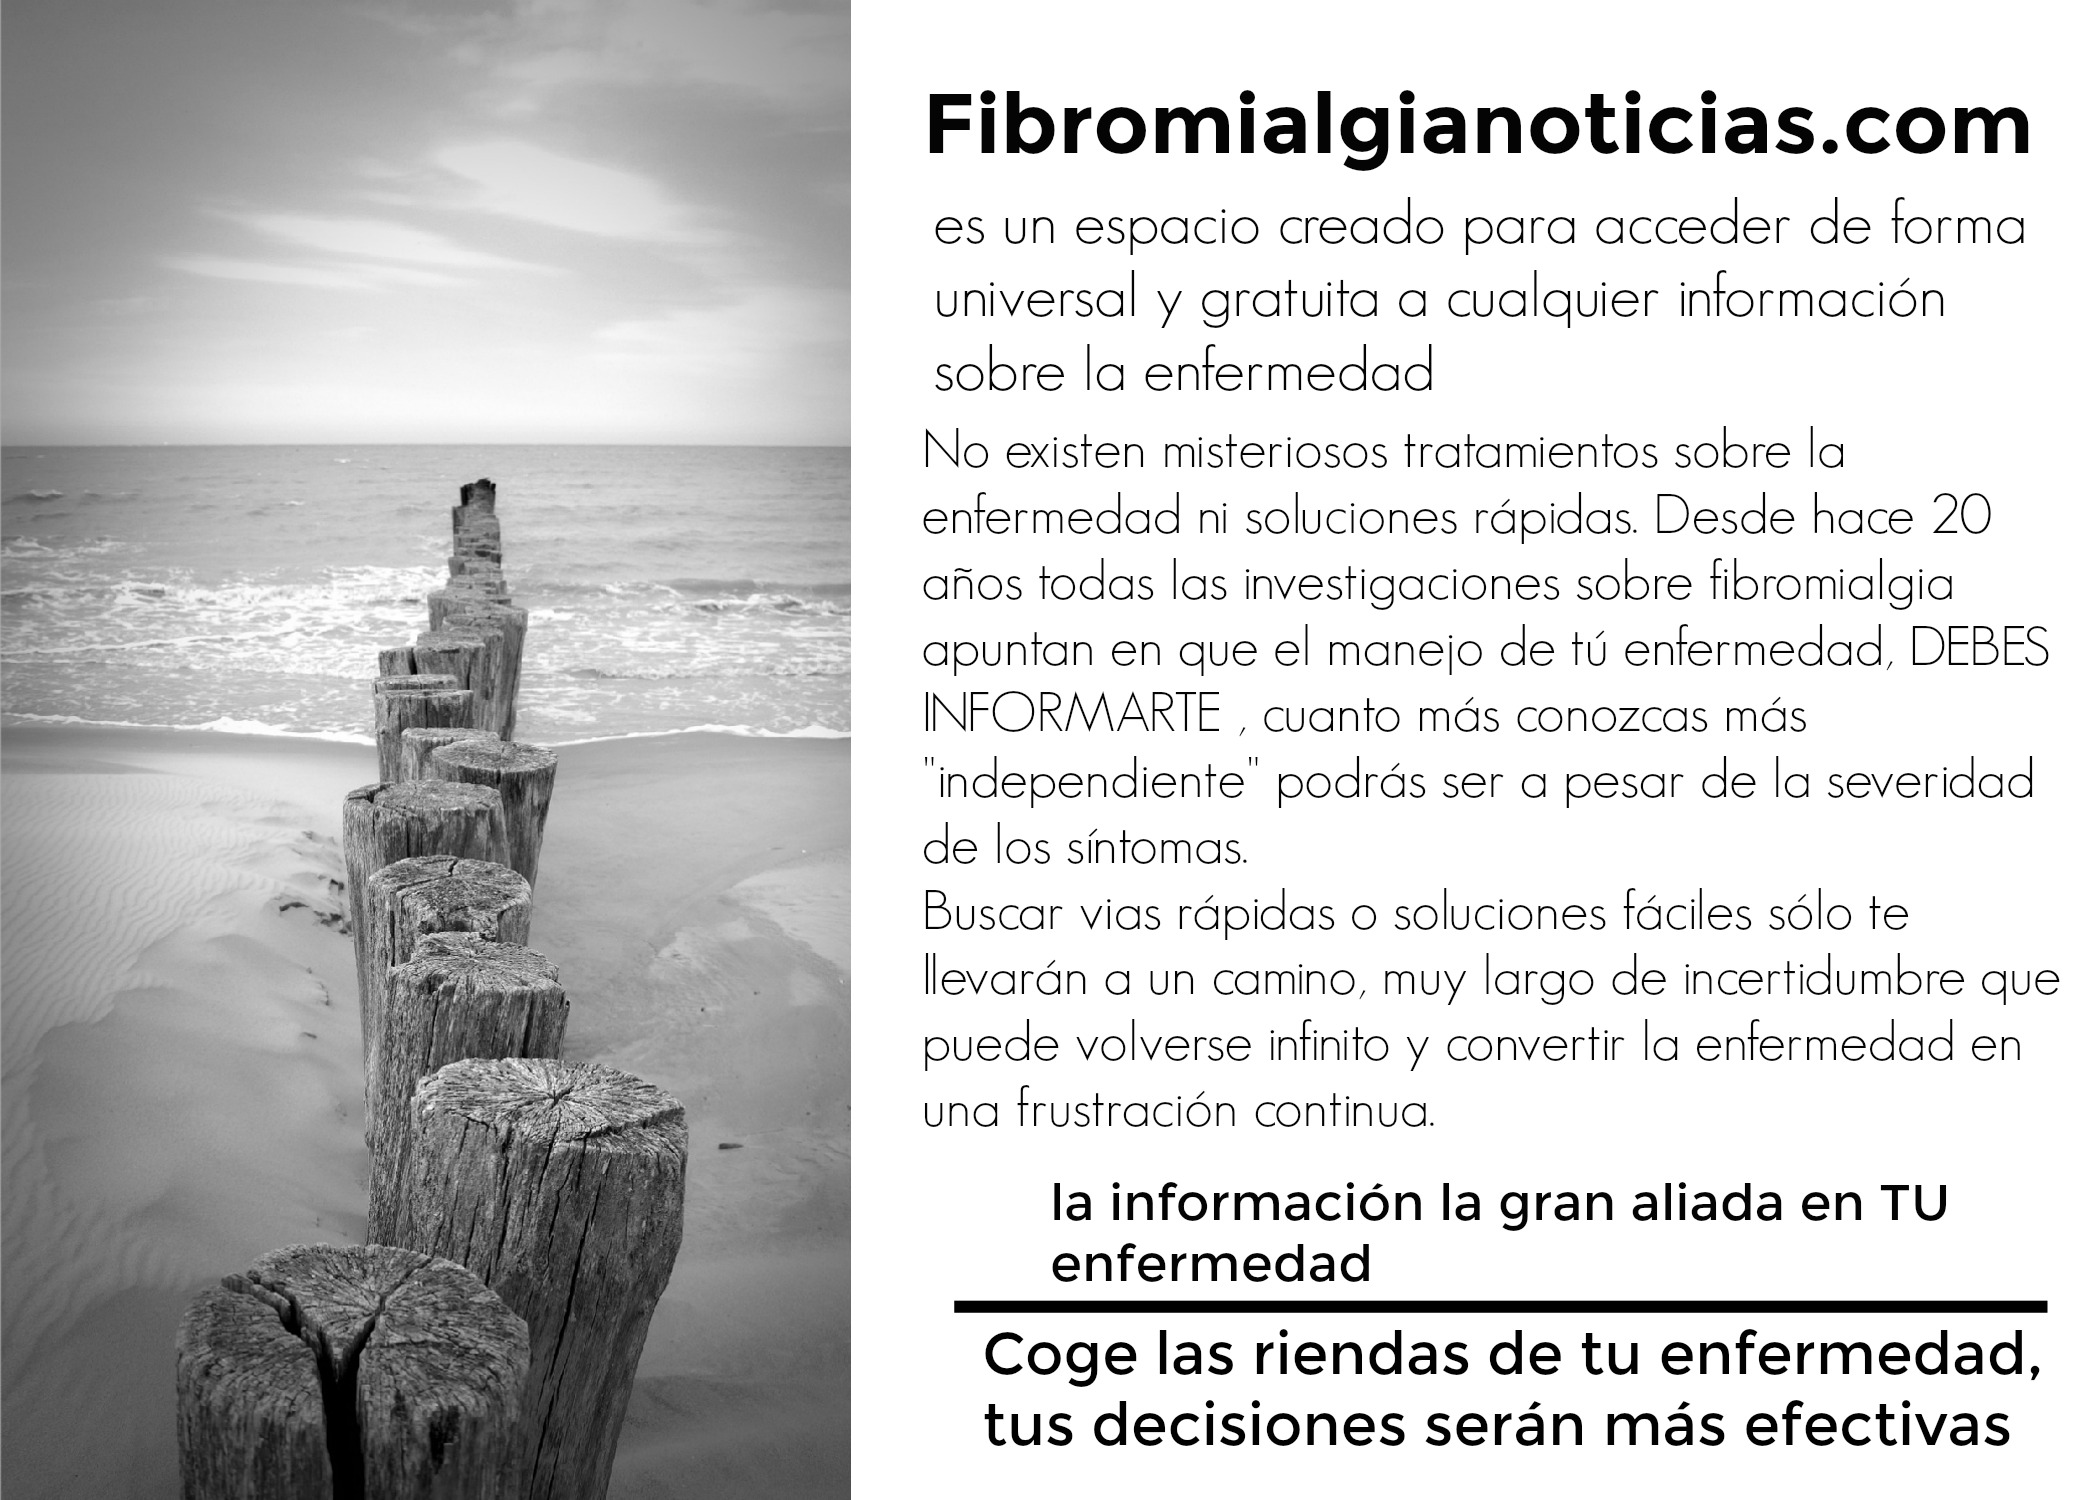 diagnostico y no es Fibromialgia